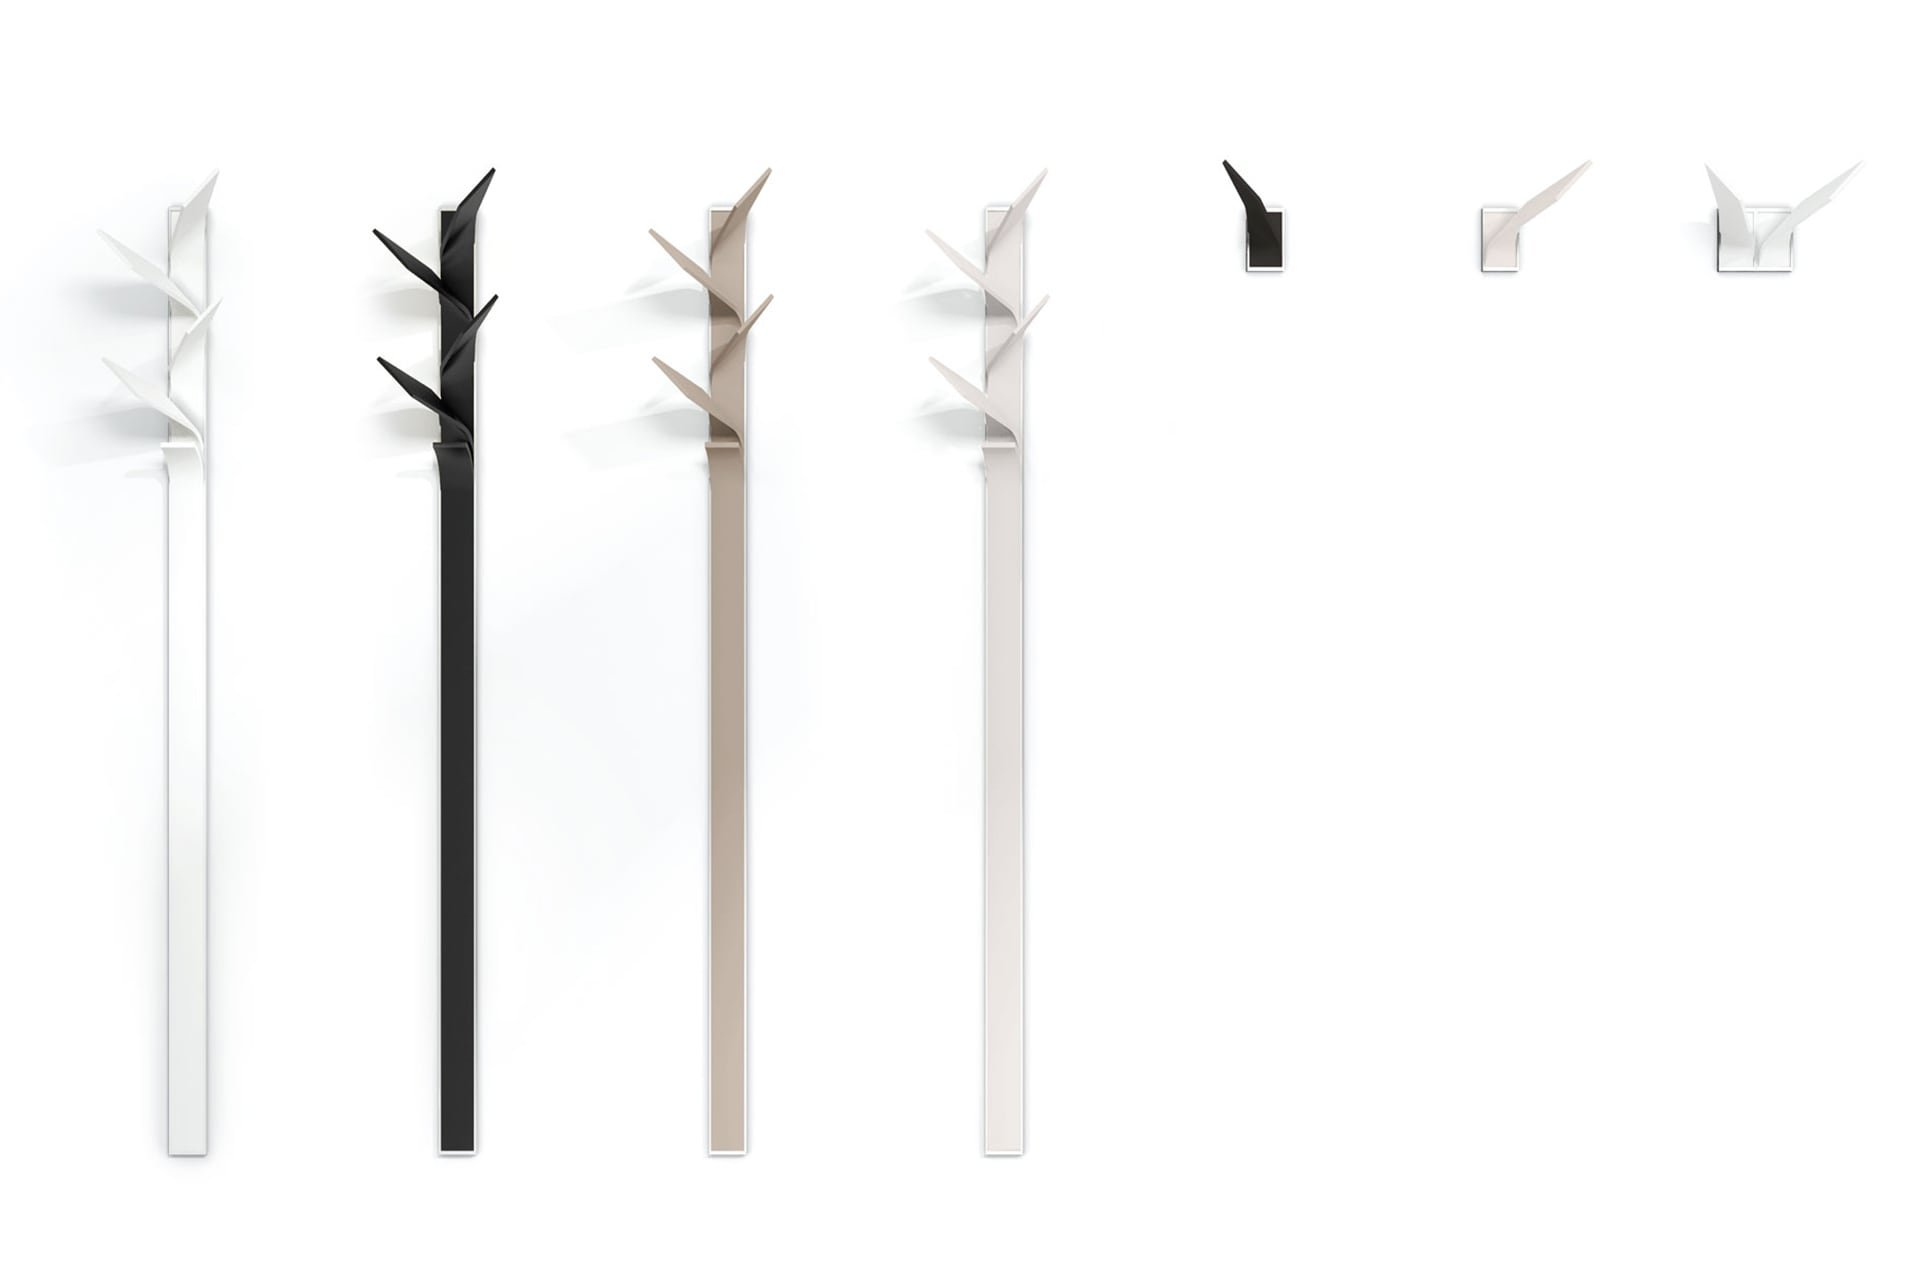 Elx Coat Hanger accessory from Punt Mobles, designed by Vicent Martinez